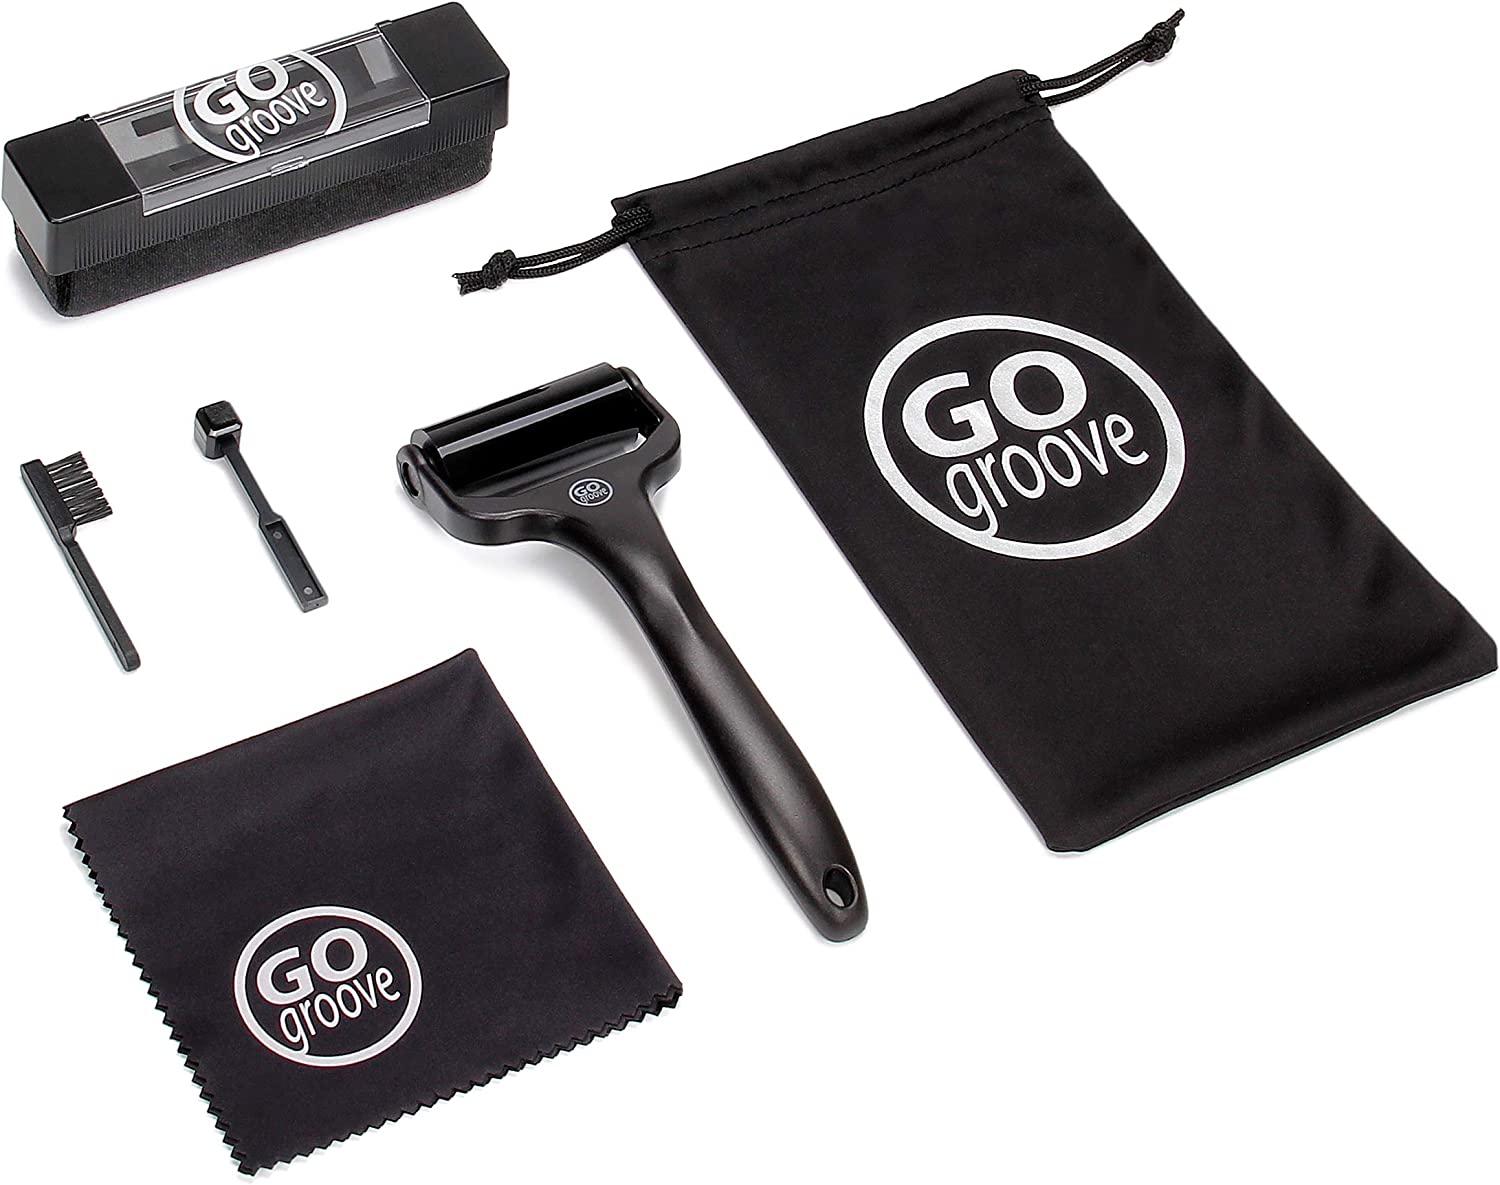 GOgroove 6-in-1 Vinyl Record Cleaner Kit - Deep Cleaning Velvet Brush for Record Player, Silicone Roller, Stylus Brush Cleaner, Repair Whisk, Microfiber Cleaning Cloth and Drawstring Travel Pouch